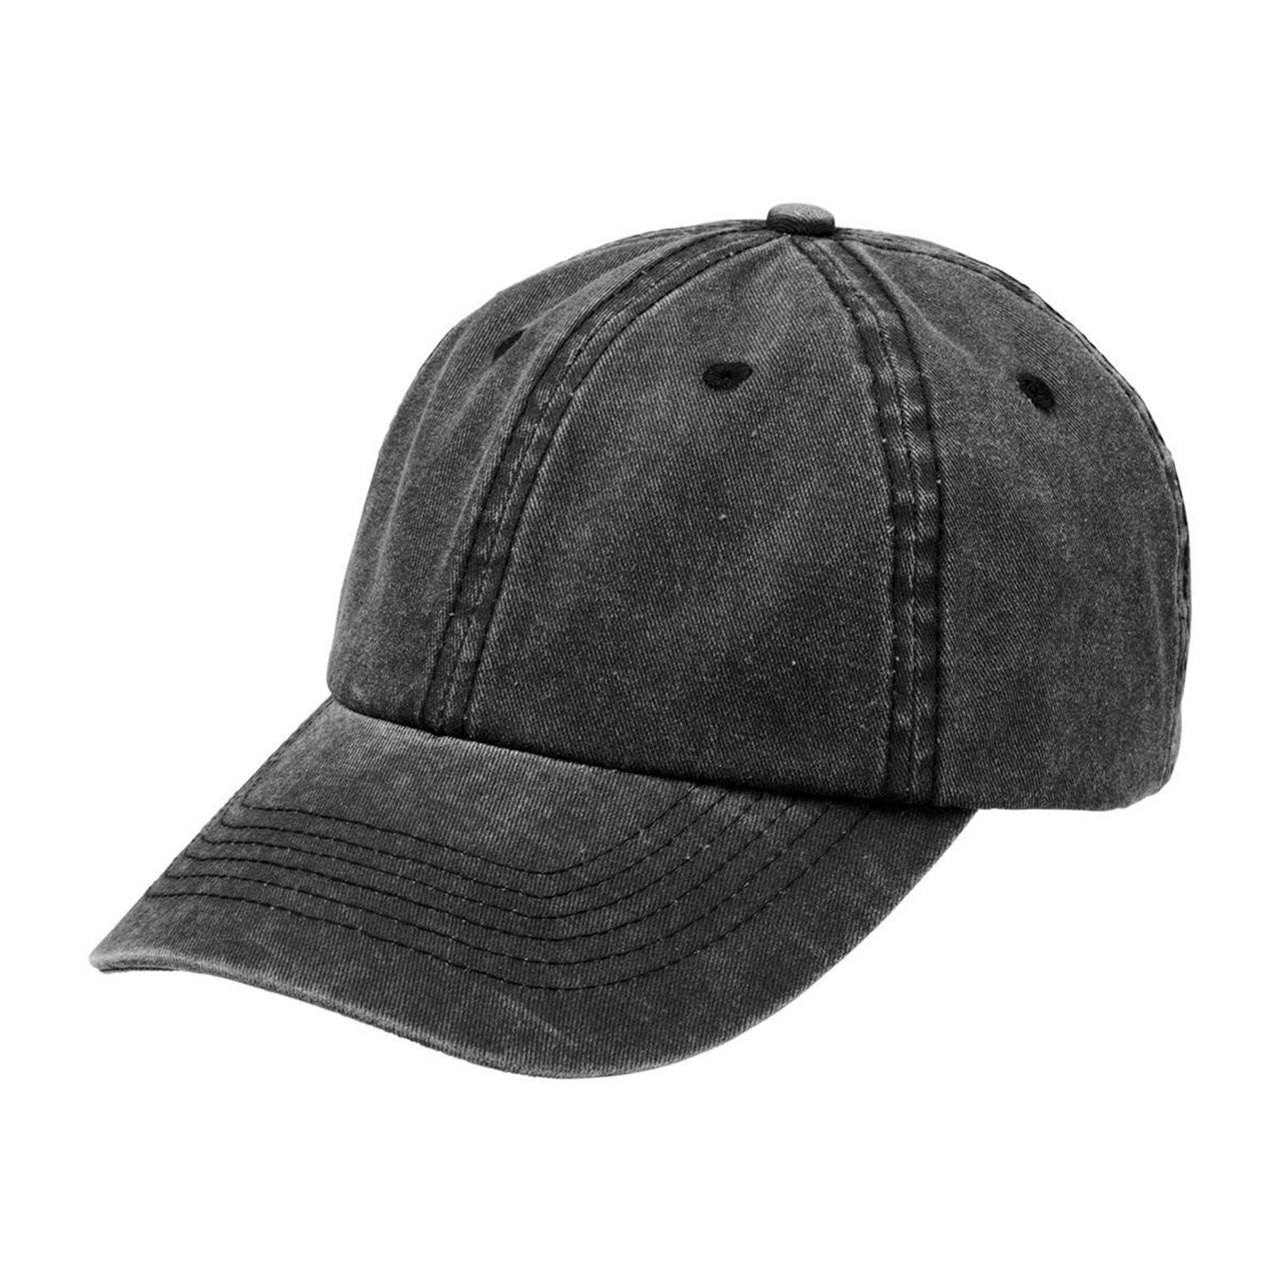 Wholesale Distressed Washed Chino Baseball Cap  13b0dc0f020